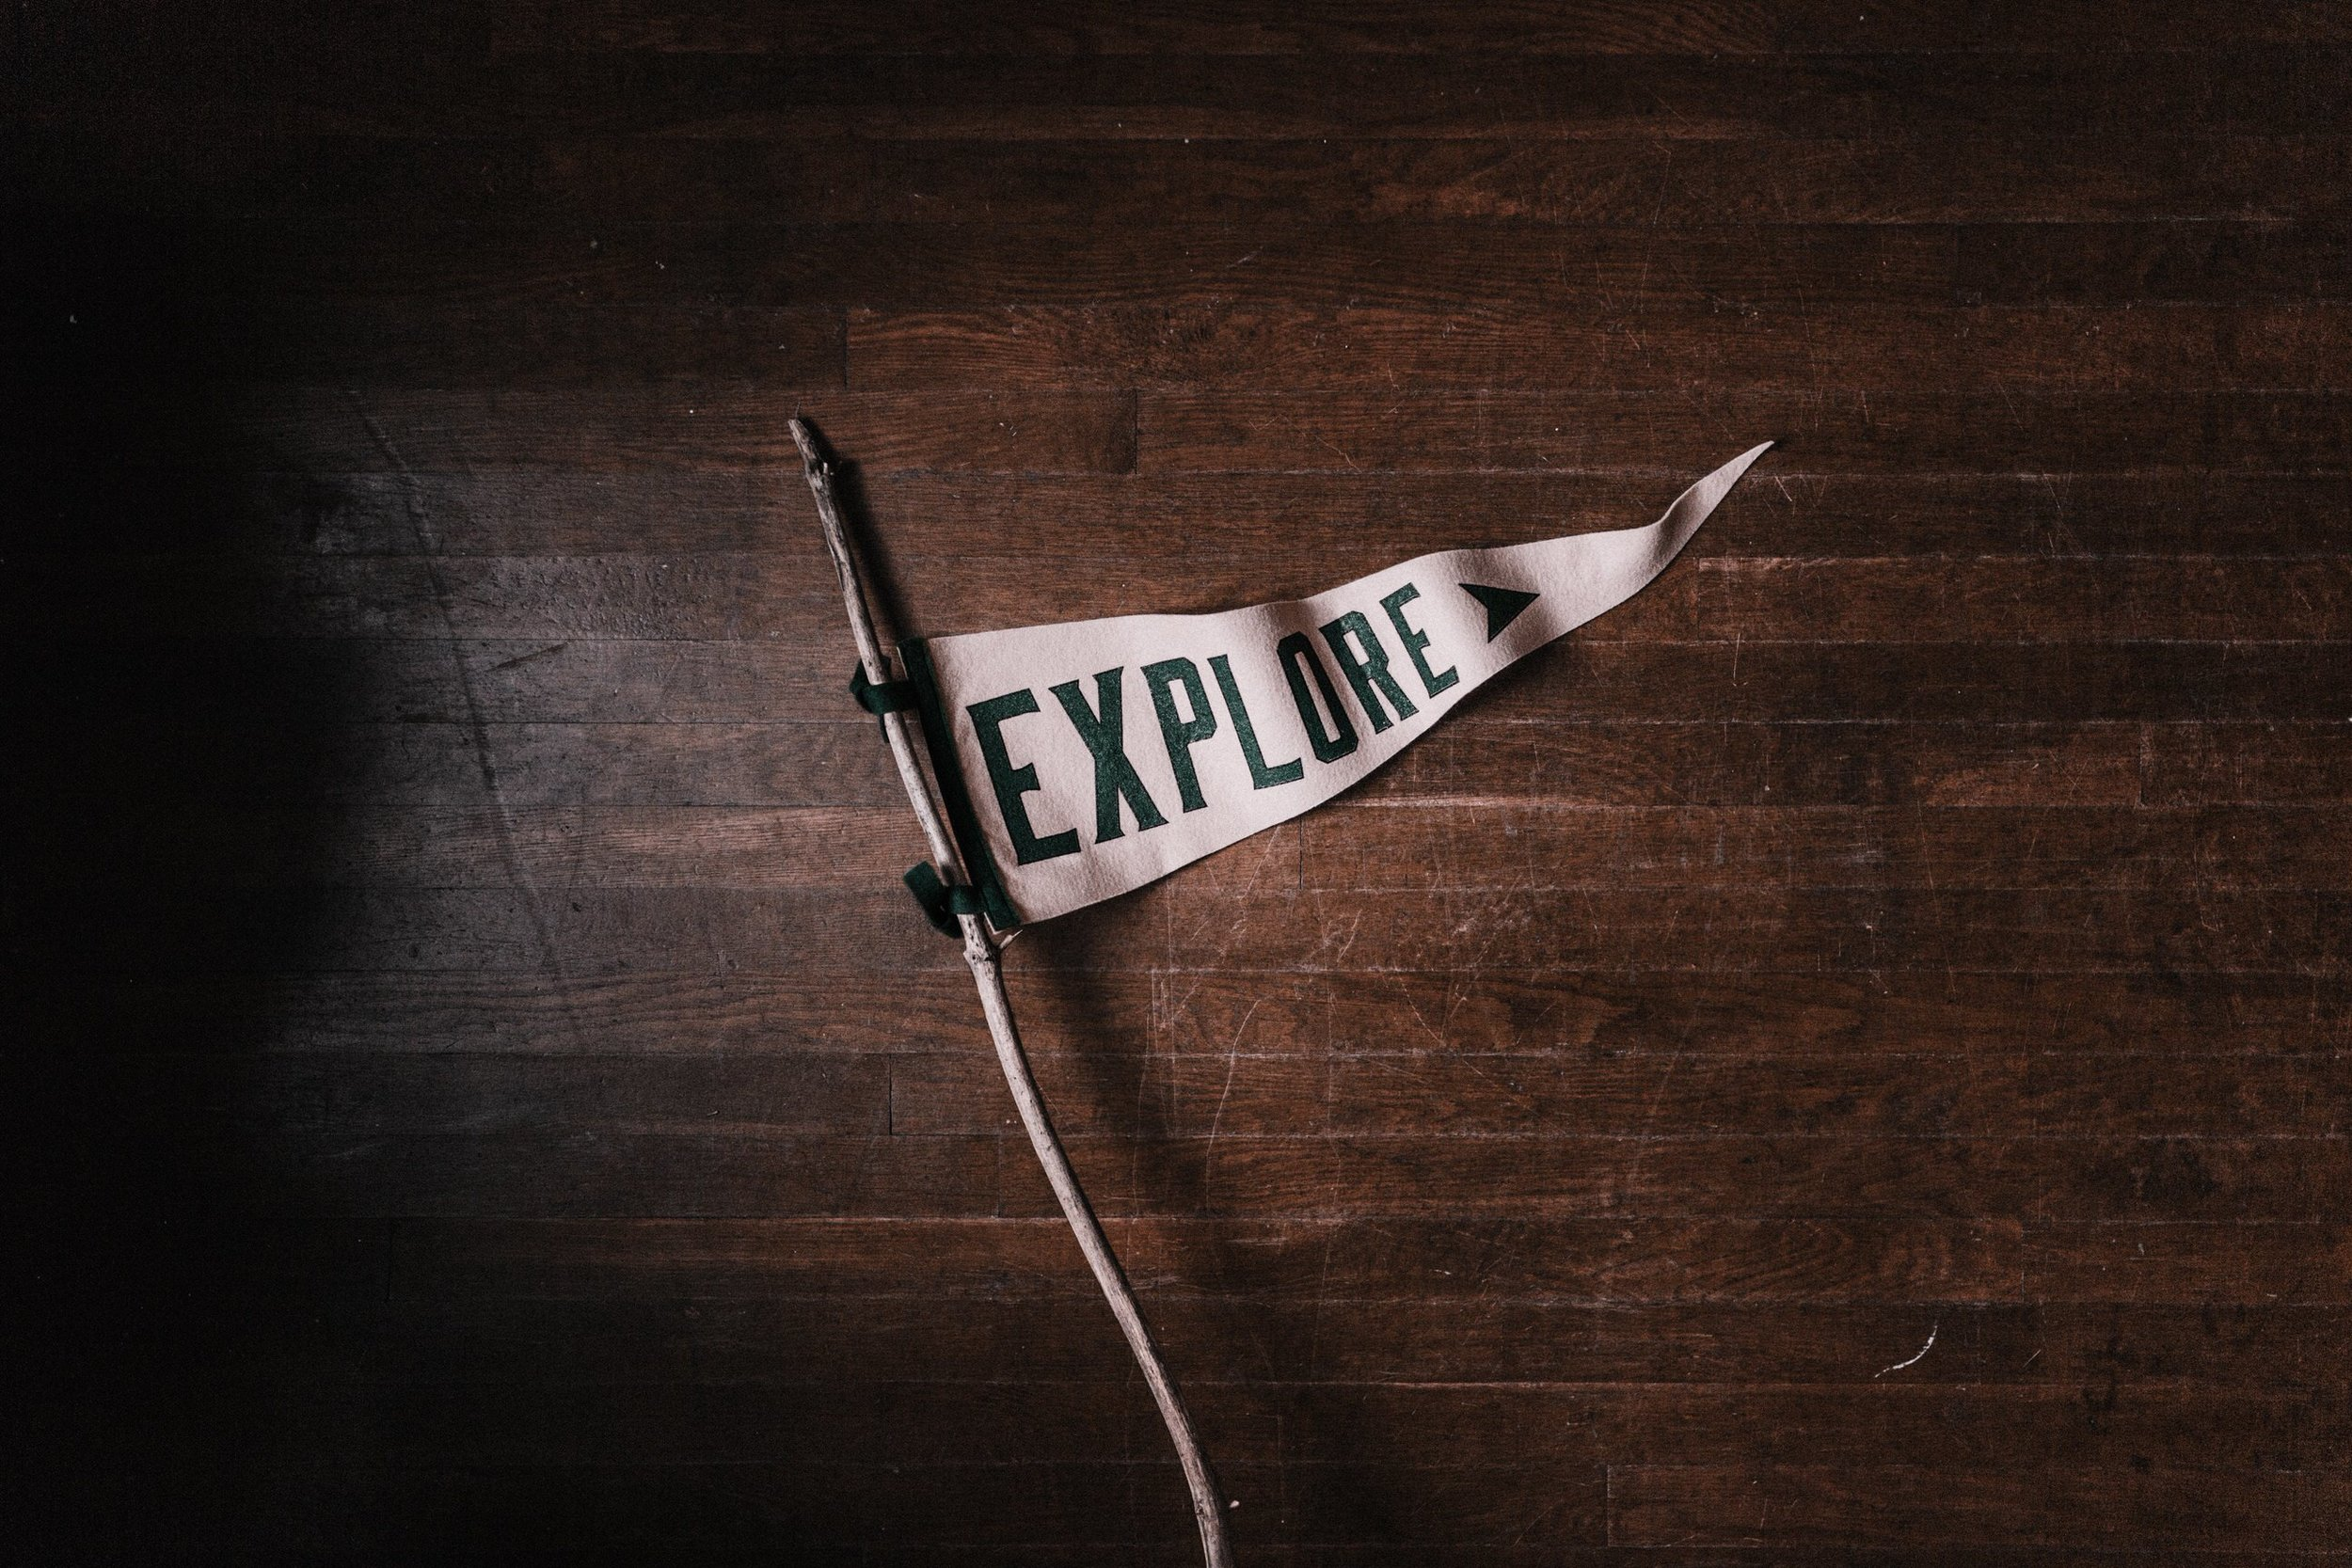 explore-flag-andrew-neel-178721-small.jpg